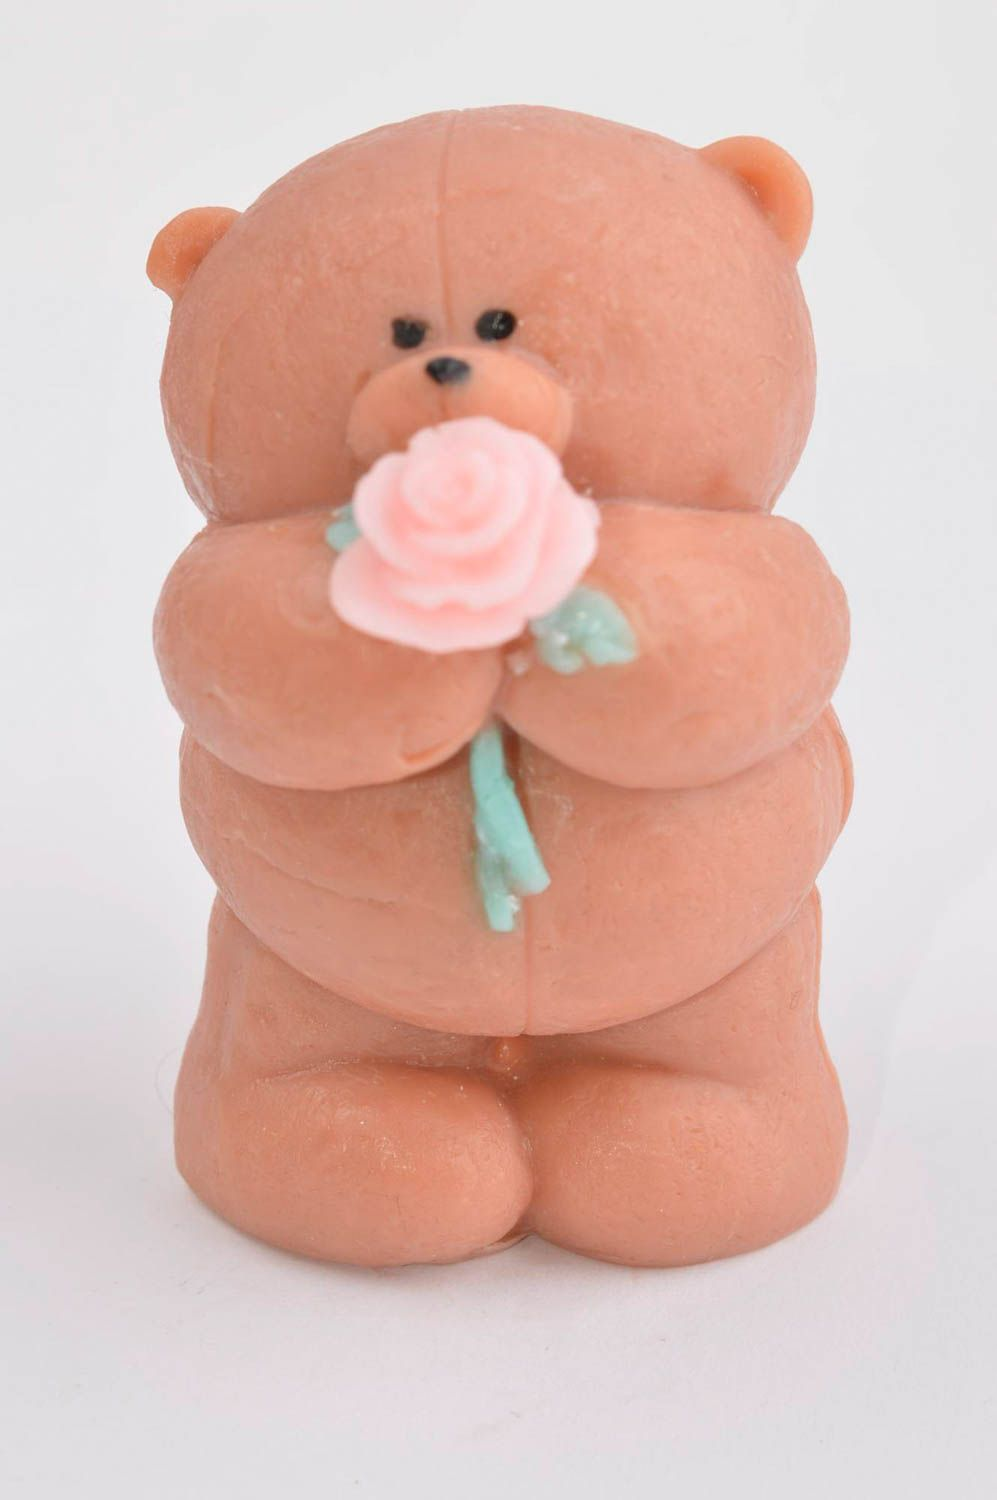 Handmade soap natural soap teddy-bear with rose natural cosmetic aroma soap photo 2